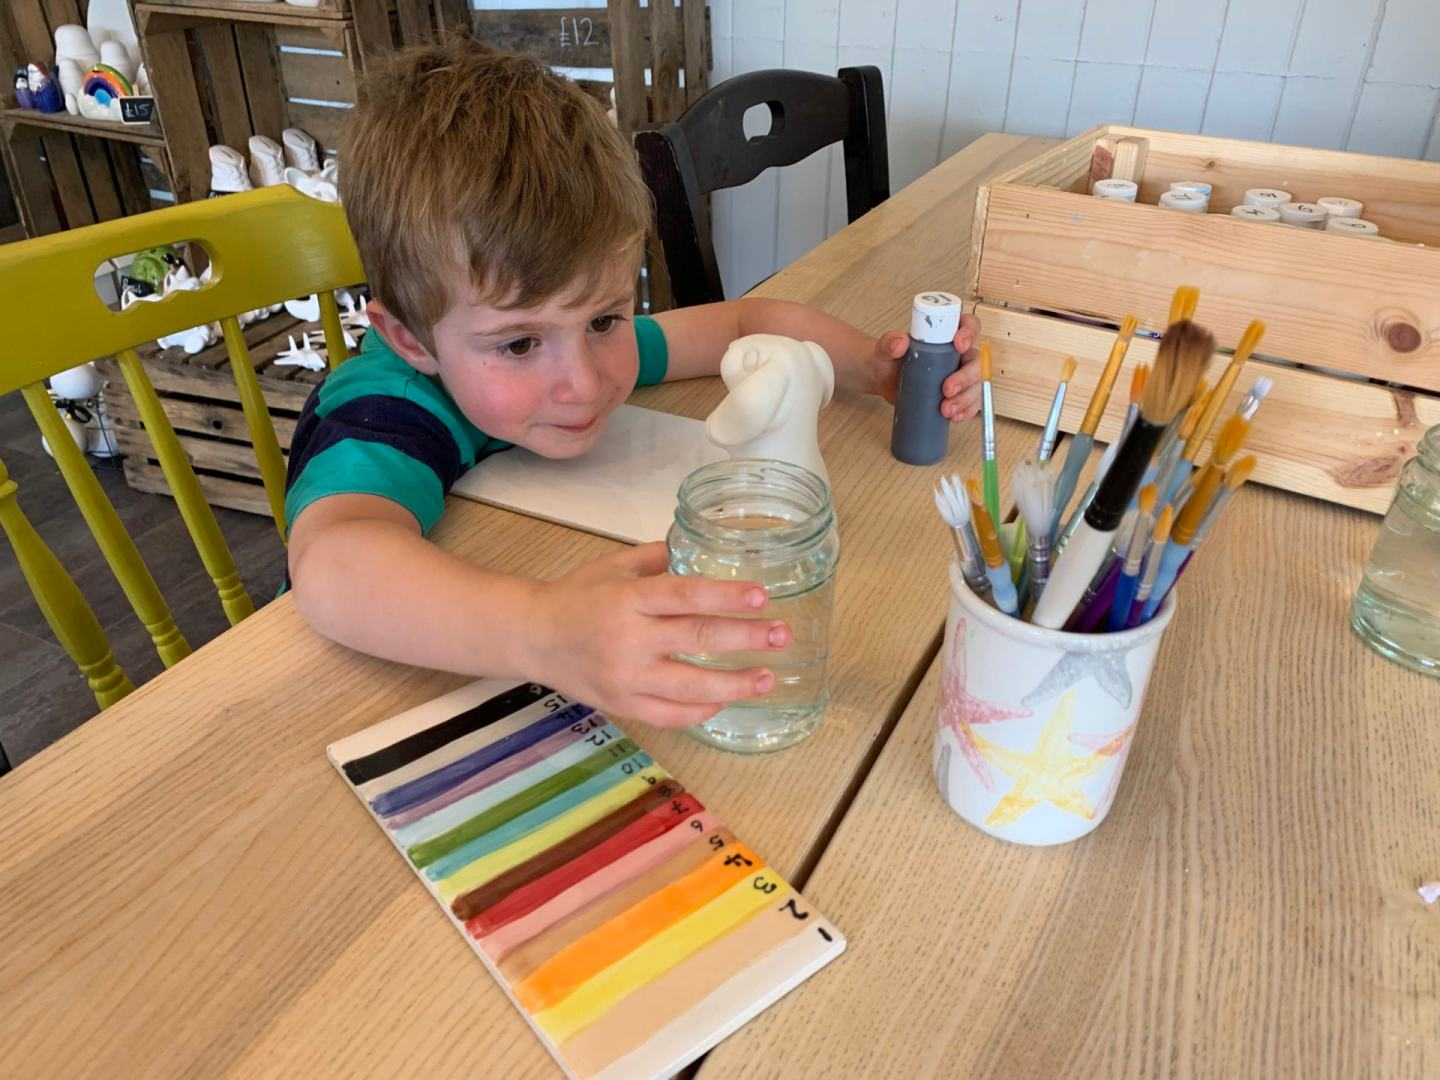 Family day out at Canny Crafty pottery studio